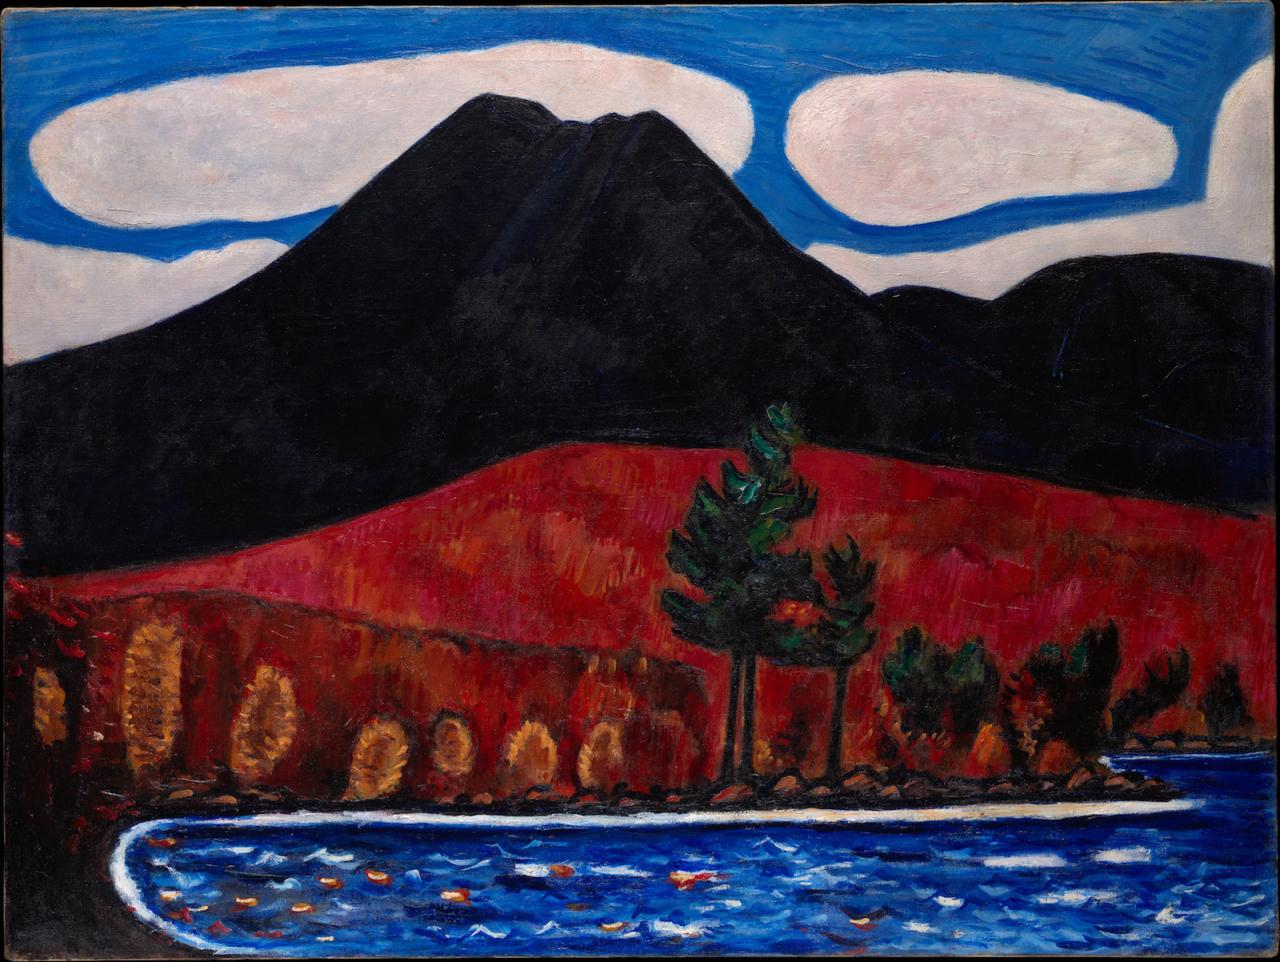 Marsden Hartley Mt. Katahdin (Maine), Autumn #2  (1939–40) Oil on canvas, 76.8 x 102.2 cm. The Metropolitan Museum of Art, Edith and Milton Lowenthal Collection, Bequest of Edith Abrahamson Lowenthal